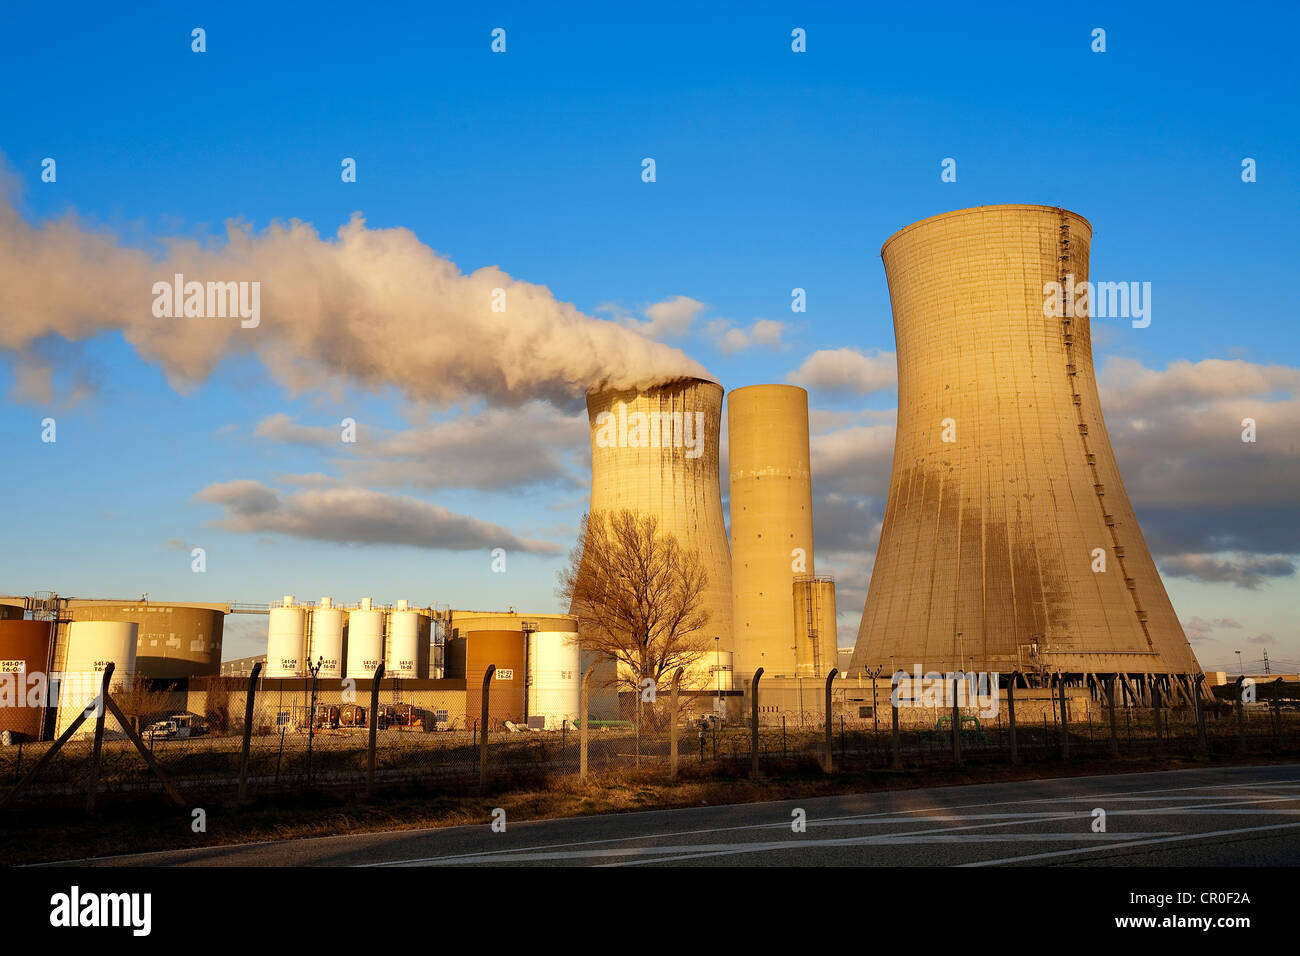 France, Vaucluse, Bollene, chimney on the industrial site of Tricastin - Stock Image